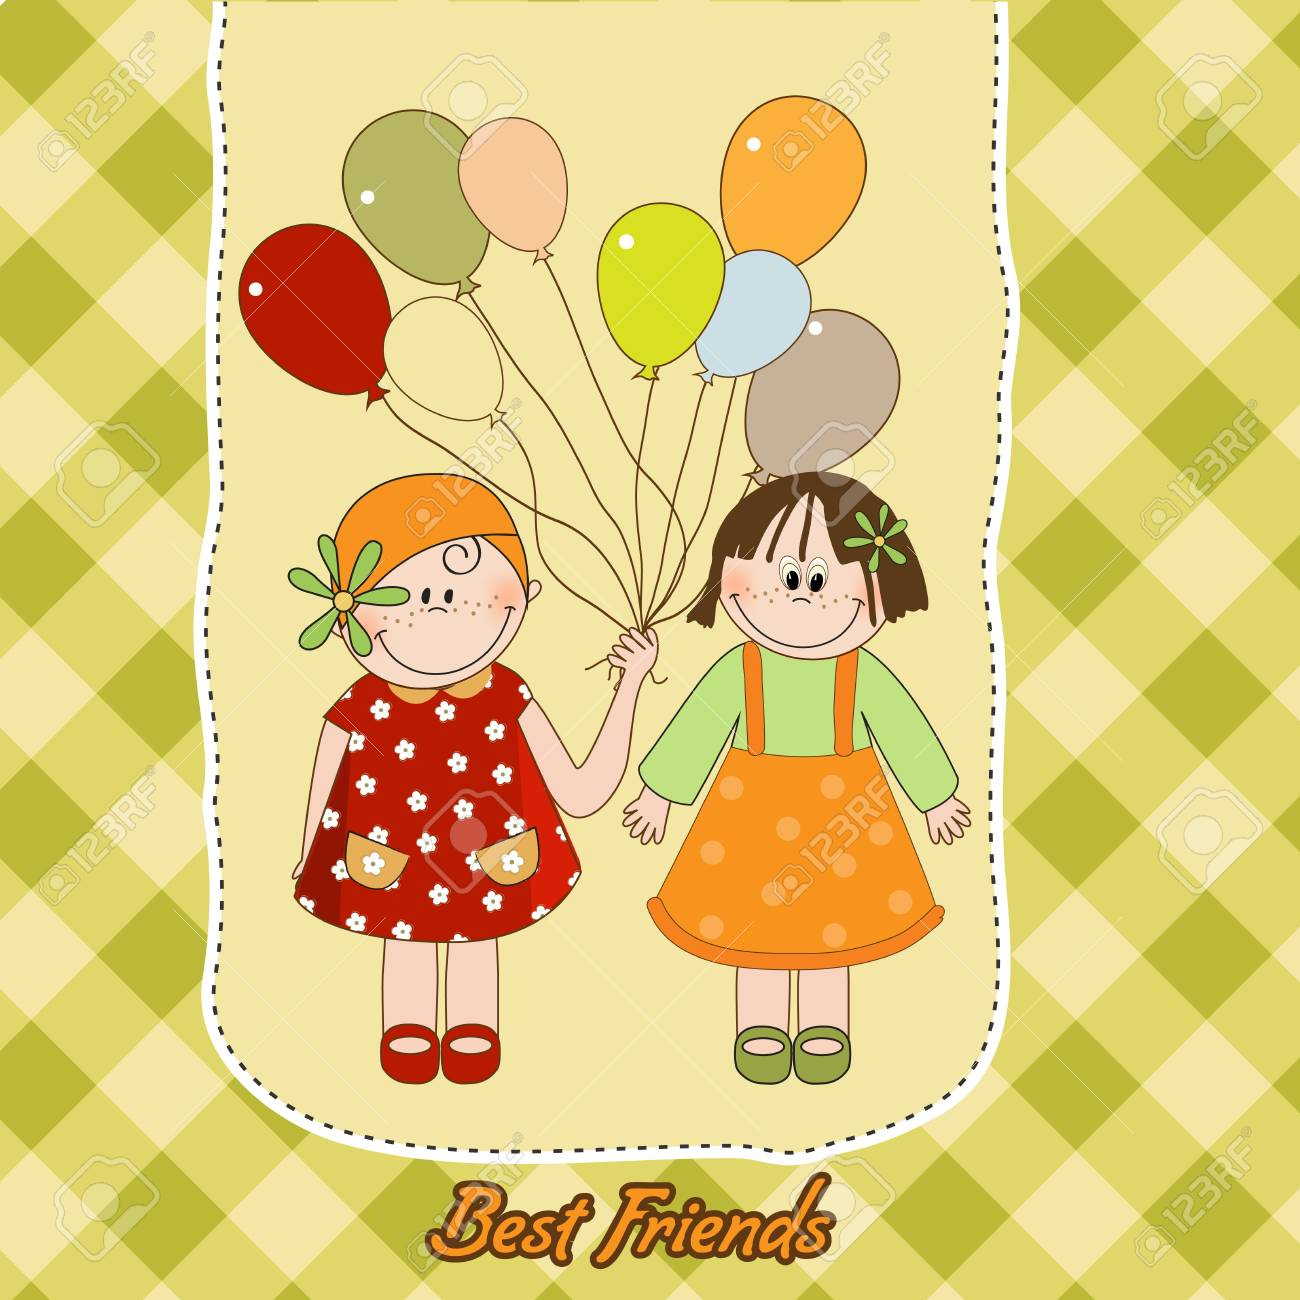 best friends greeting card Stock Vector - 9806416